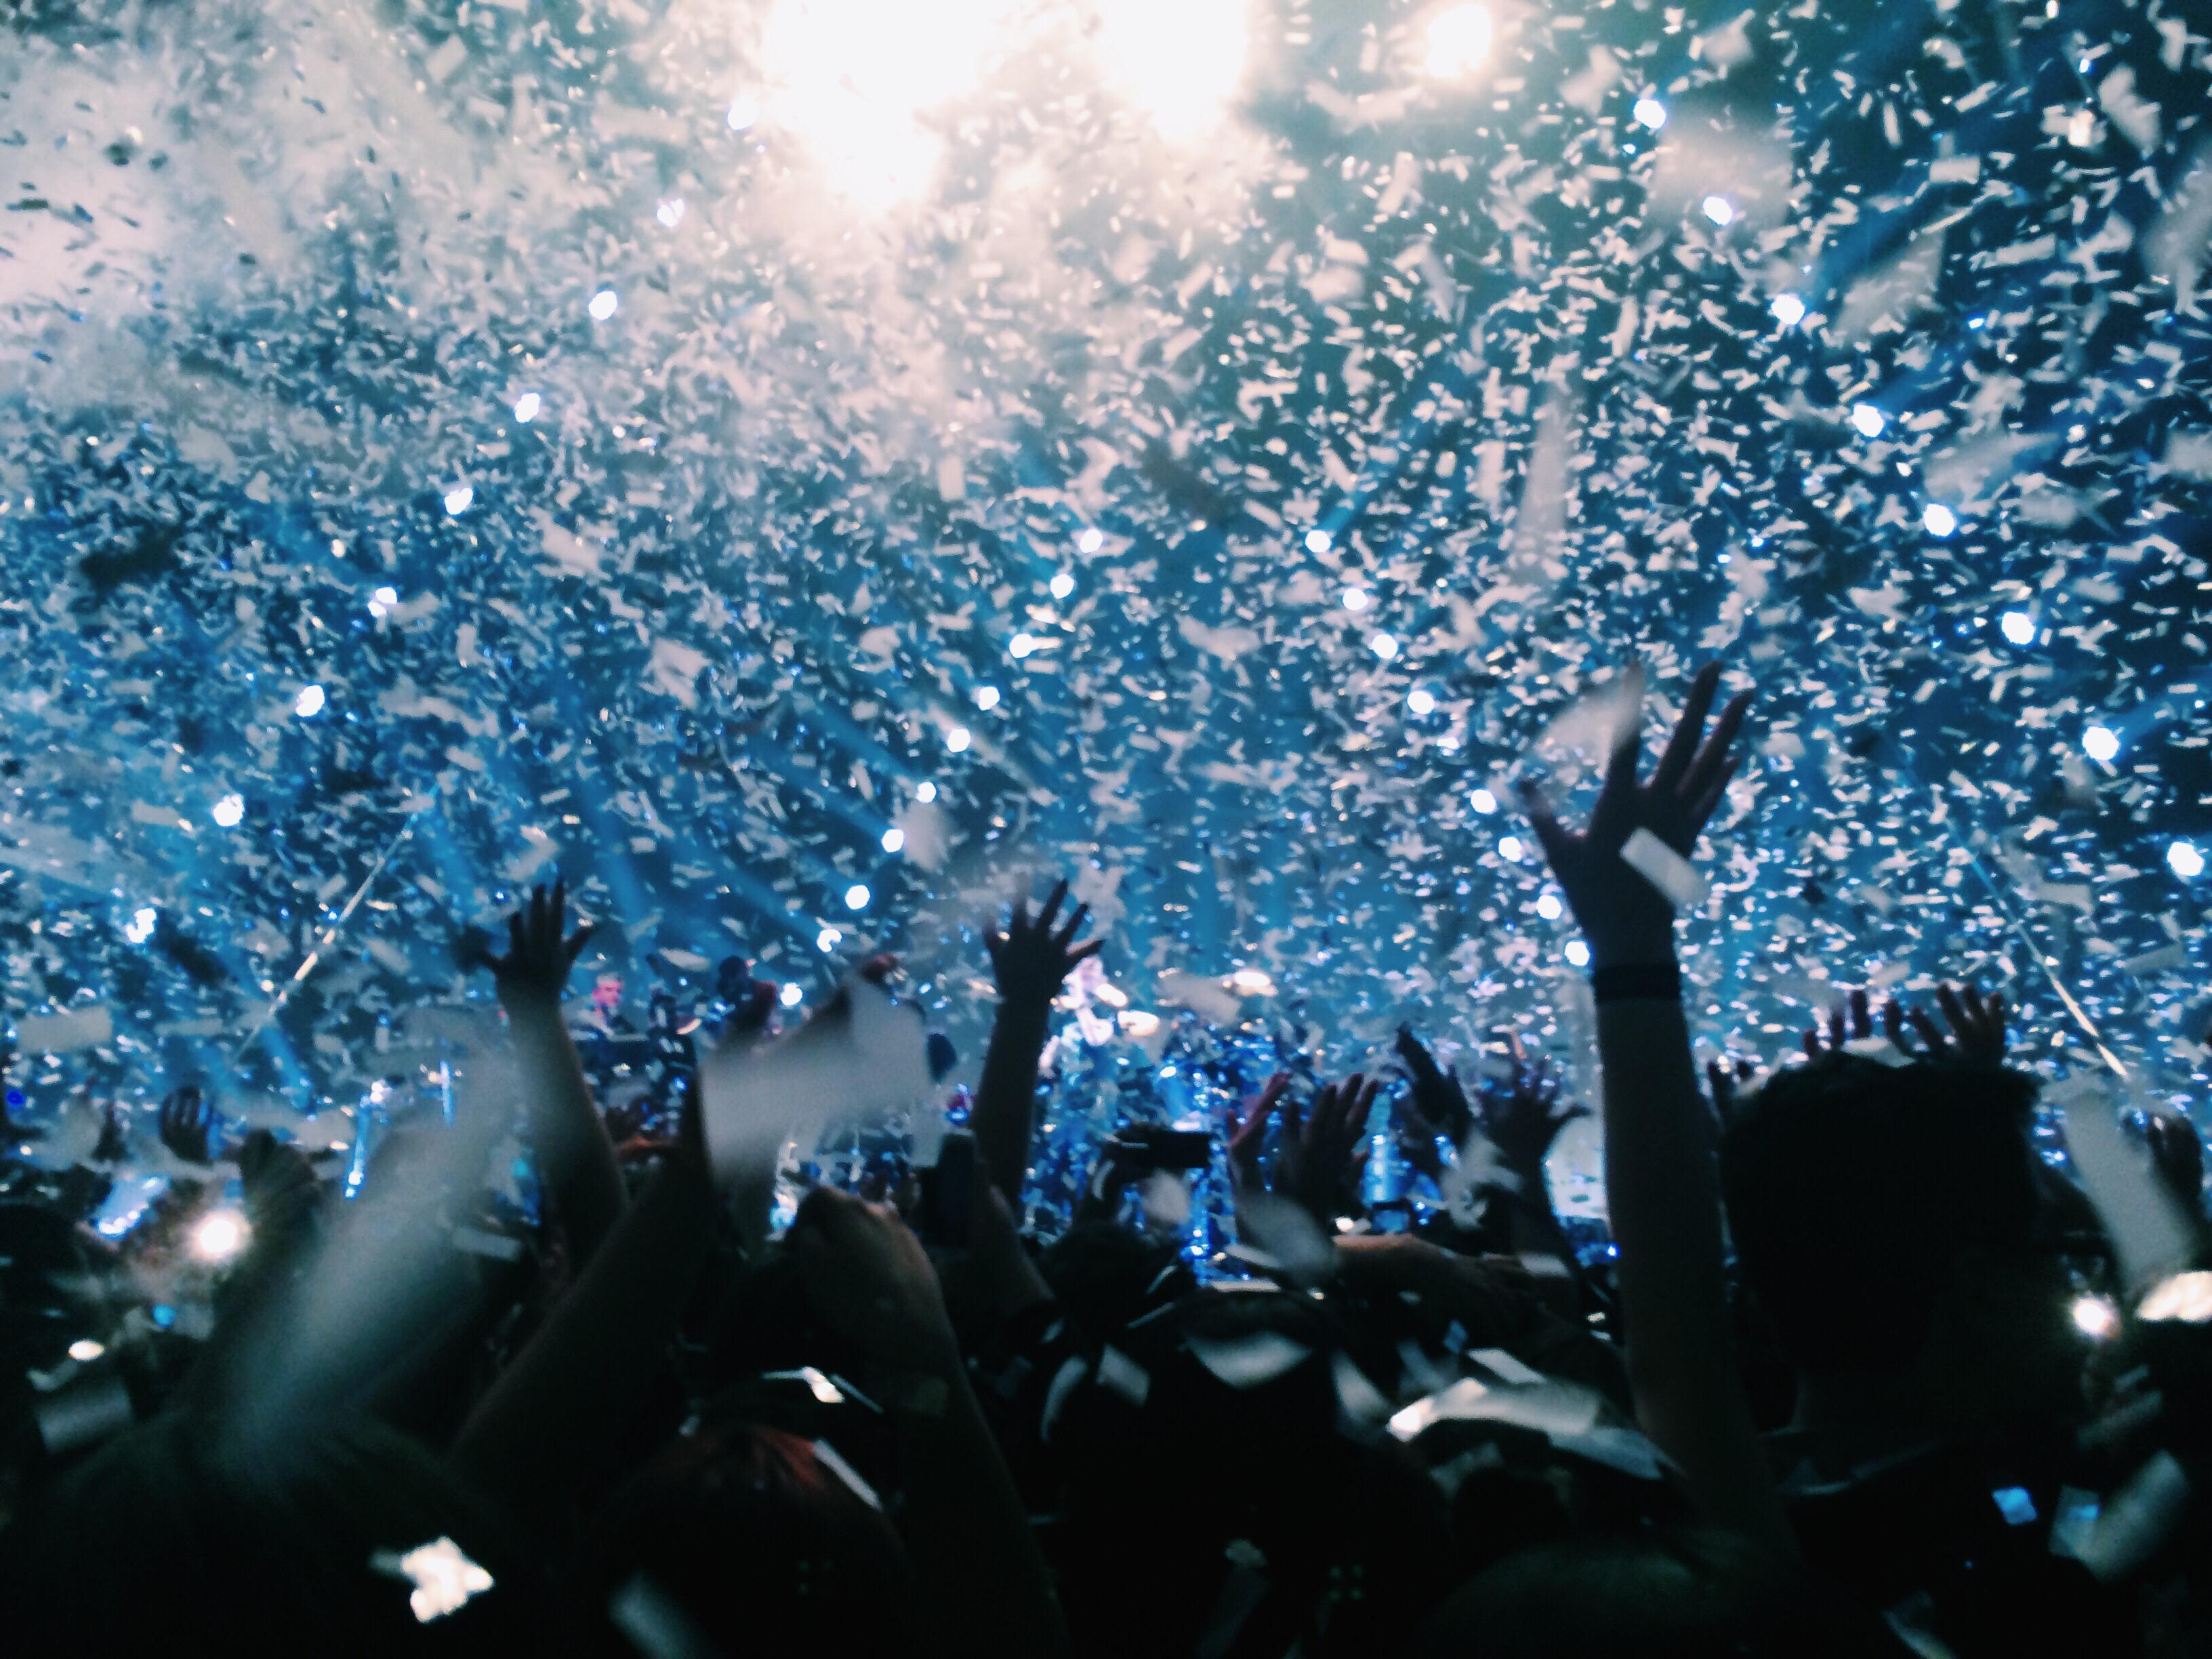 Rock Bouncer Events 2020.The Ultimate Guide To Celebrating New Year S Eve 2020 In Nyc